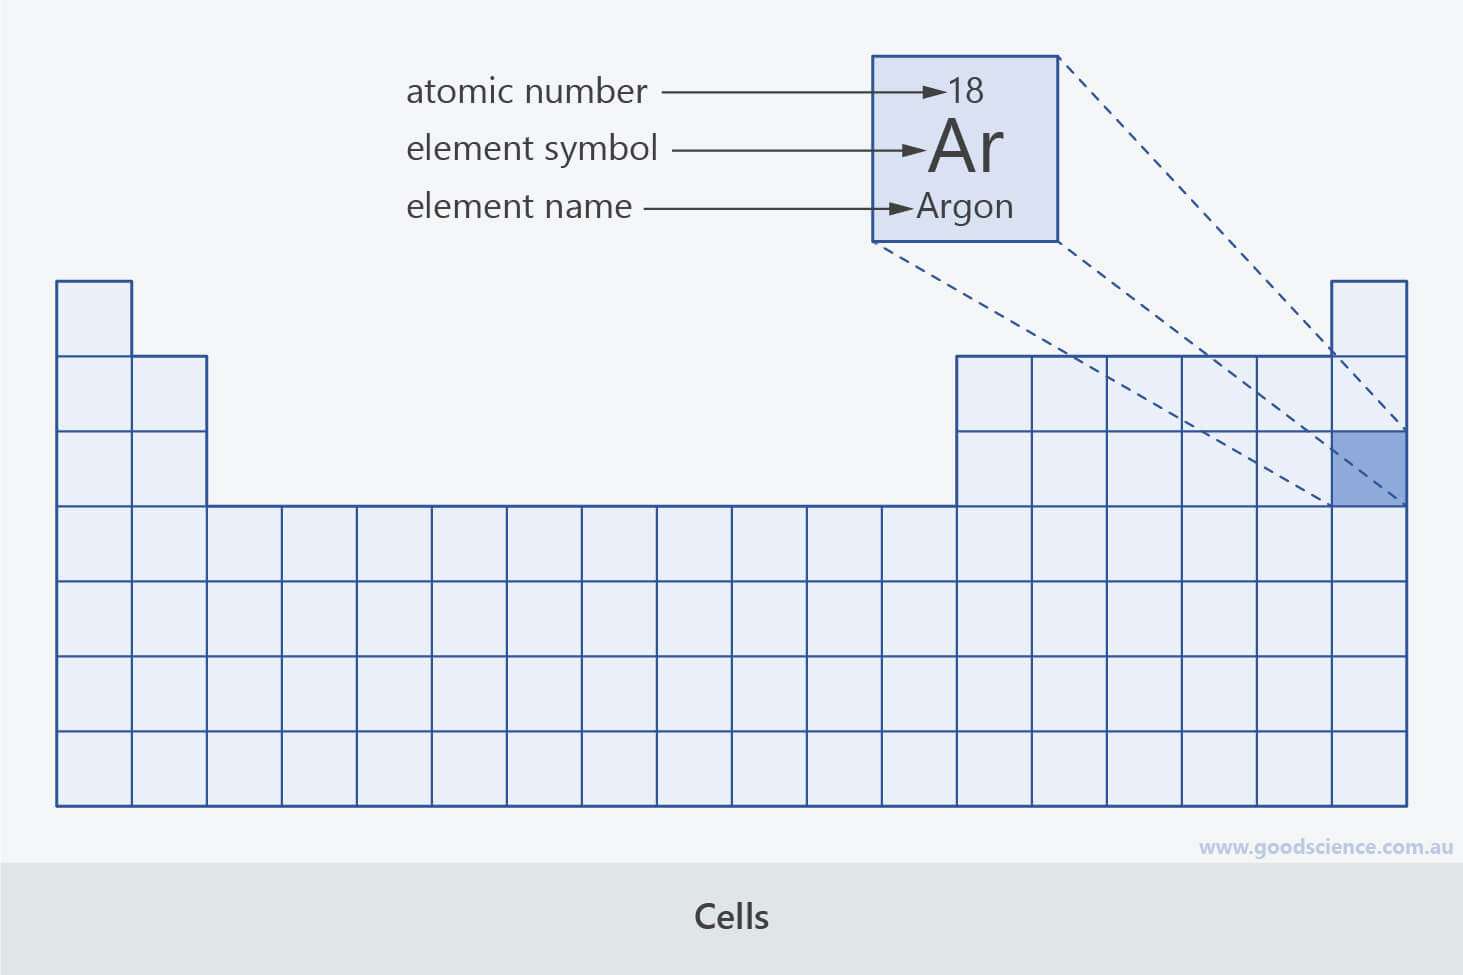 periodic table cell atomic number element name symbol